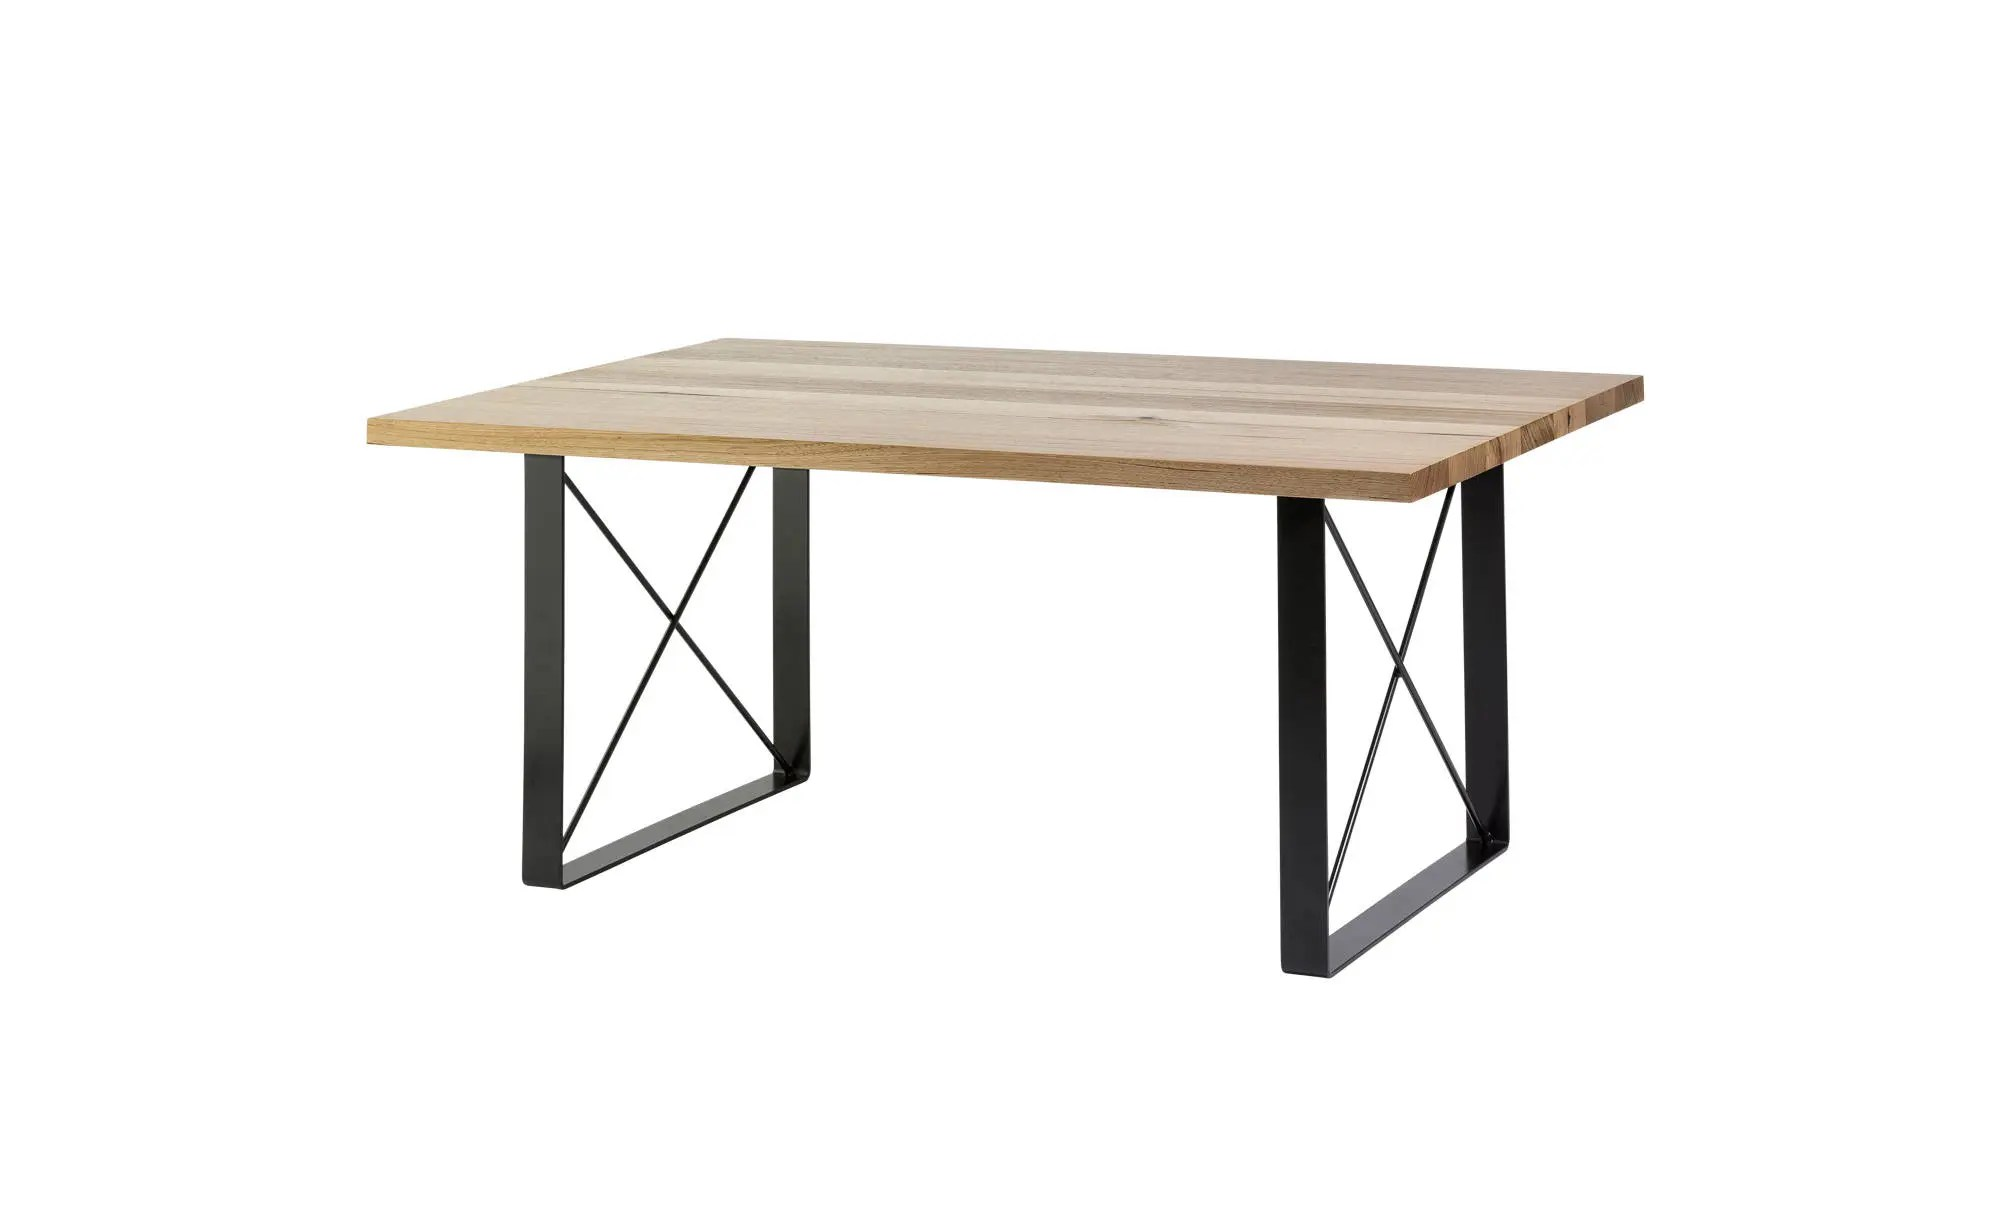 Hairpin Legs Melbourne St Kilda Reclaimed Timber Table With X Frame Square Legs